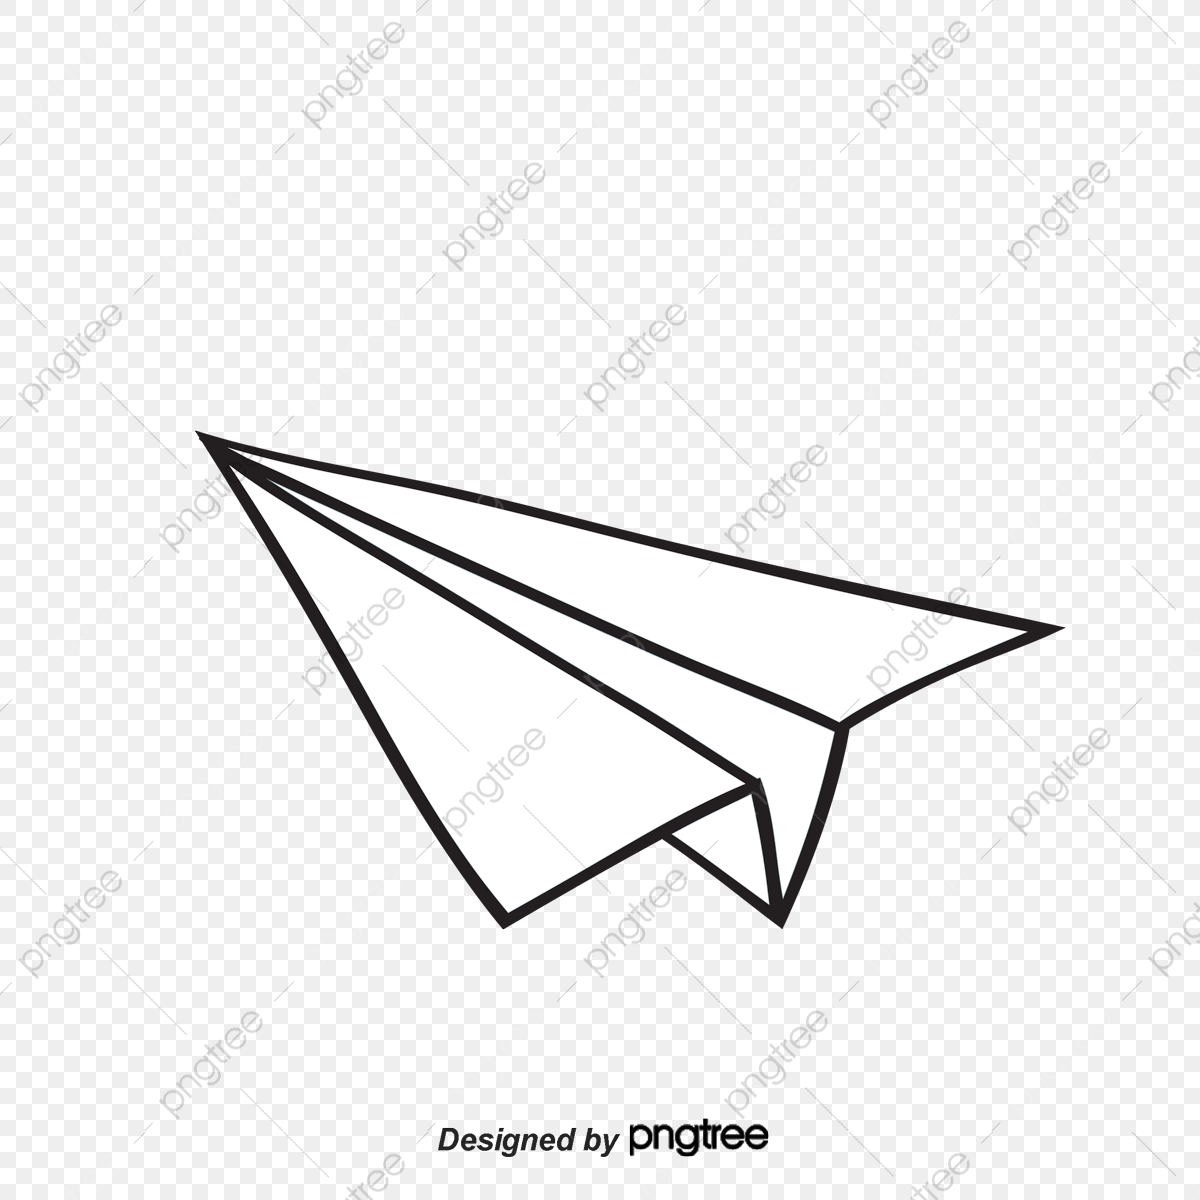 Paper Airplane Floating Material Free To Pull Airplane Clipart Paper Plane Float Png Transparent Clipart Image And Psd File For Free Download